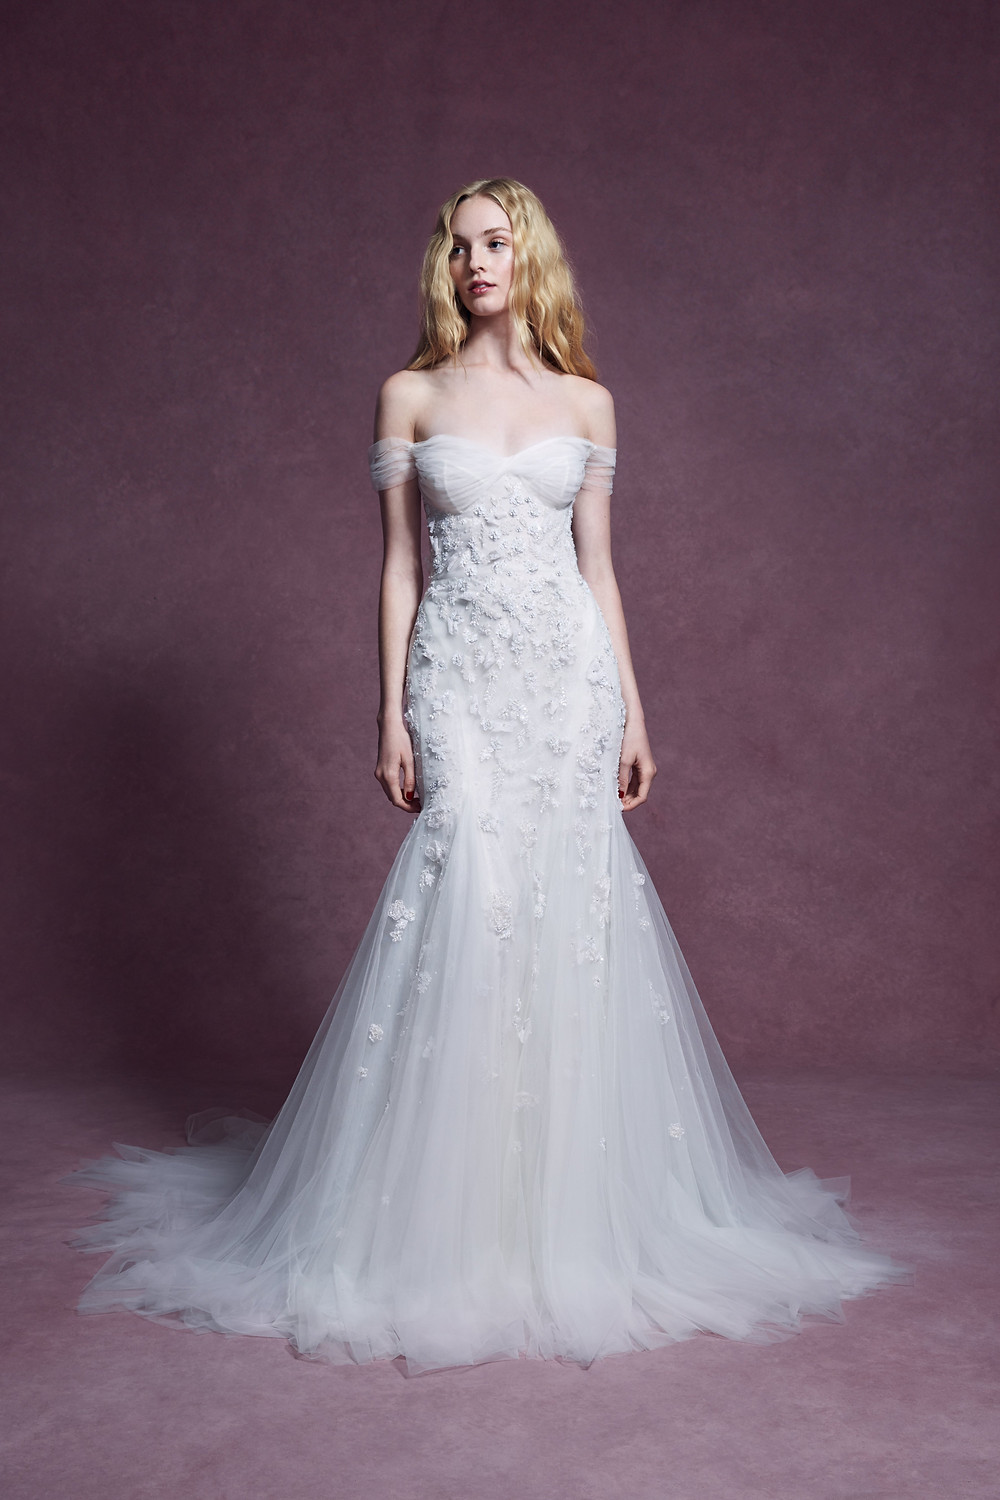 A Marchesa 2020 soft, flowy off the shoulder, tulle mermaid wedding dress with flowers